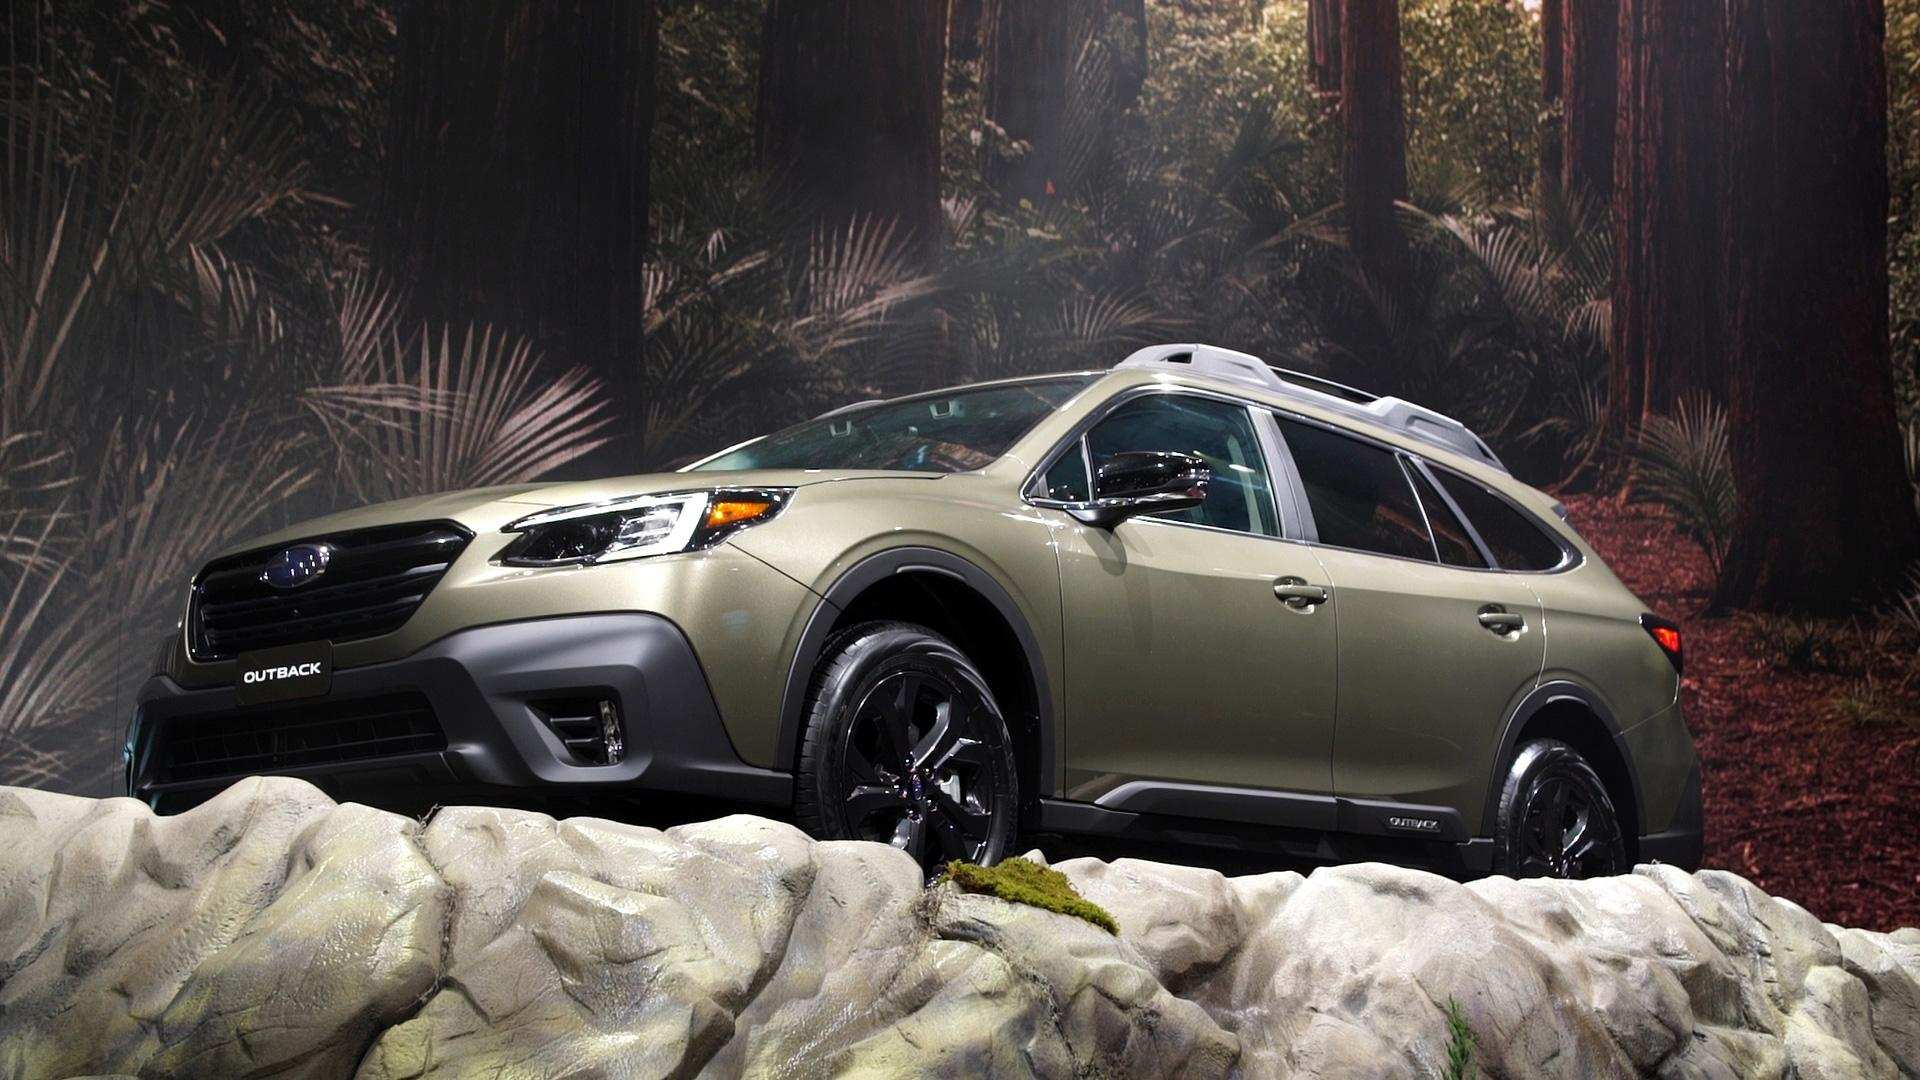 Best Gas Mileage Cars 2020 69 Best Review 2020 Subaru Outback Gas Mileage History for 2020